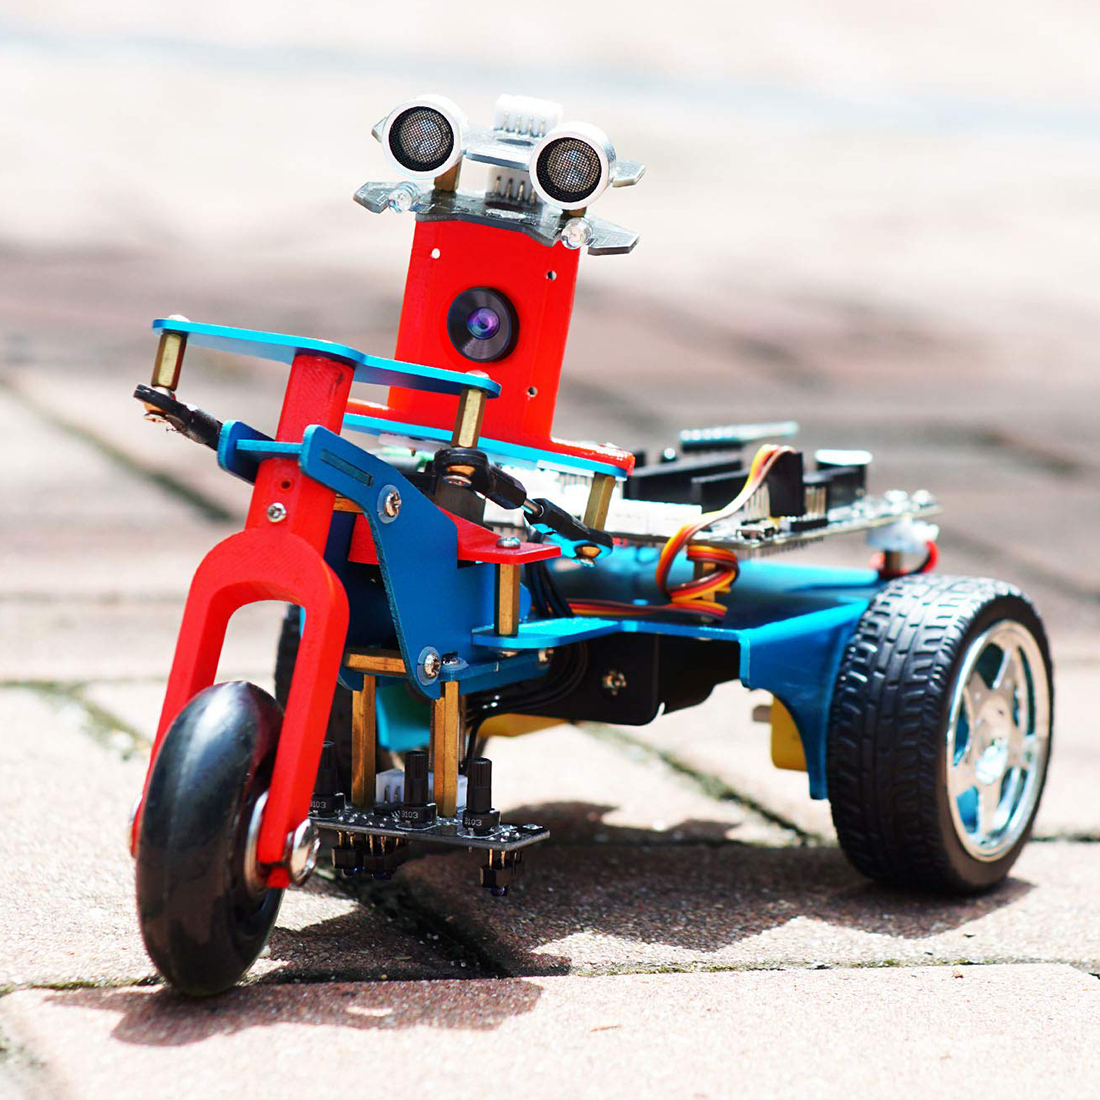 Three-Wheeled Car Smart Robot Kit Programmable Learning Toy With HD Camera DIY Robot Kit With 1/2/4G Raspberry 4B